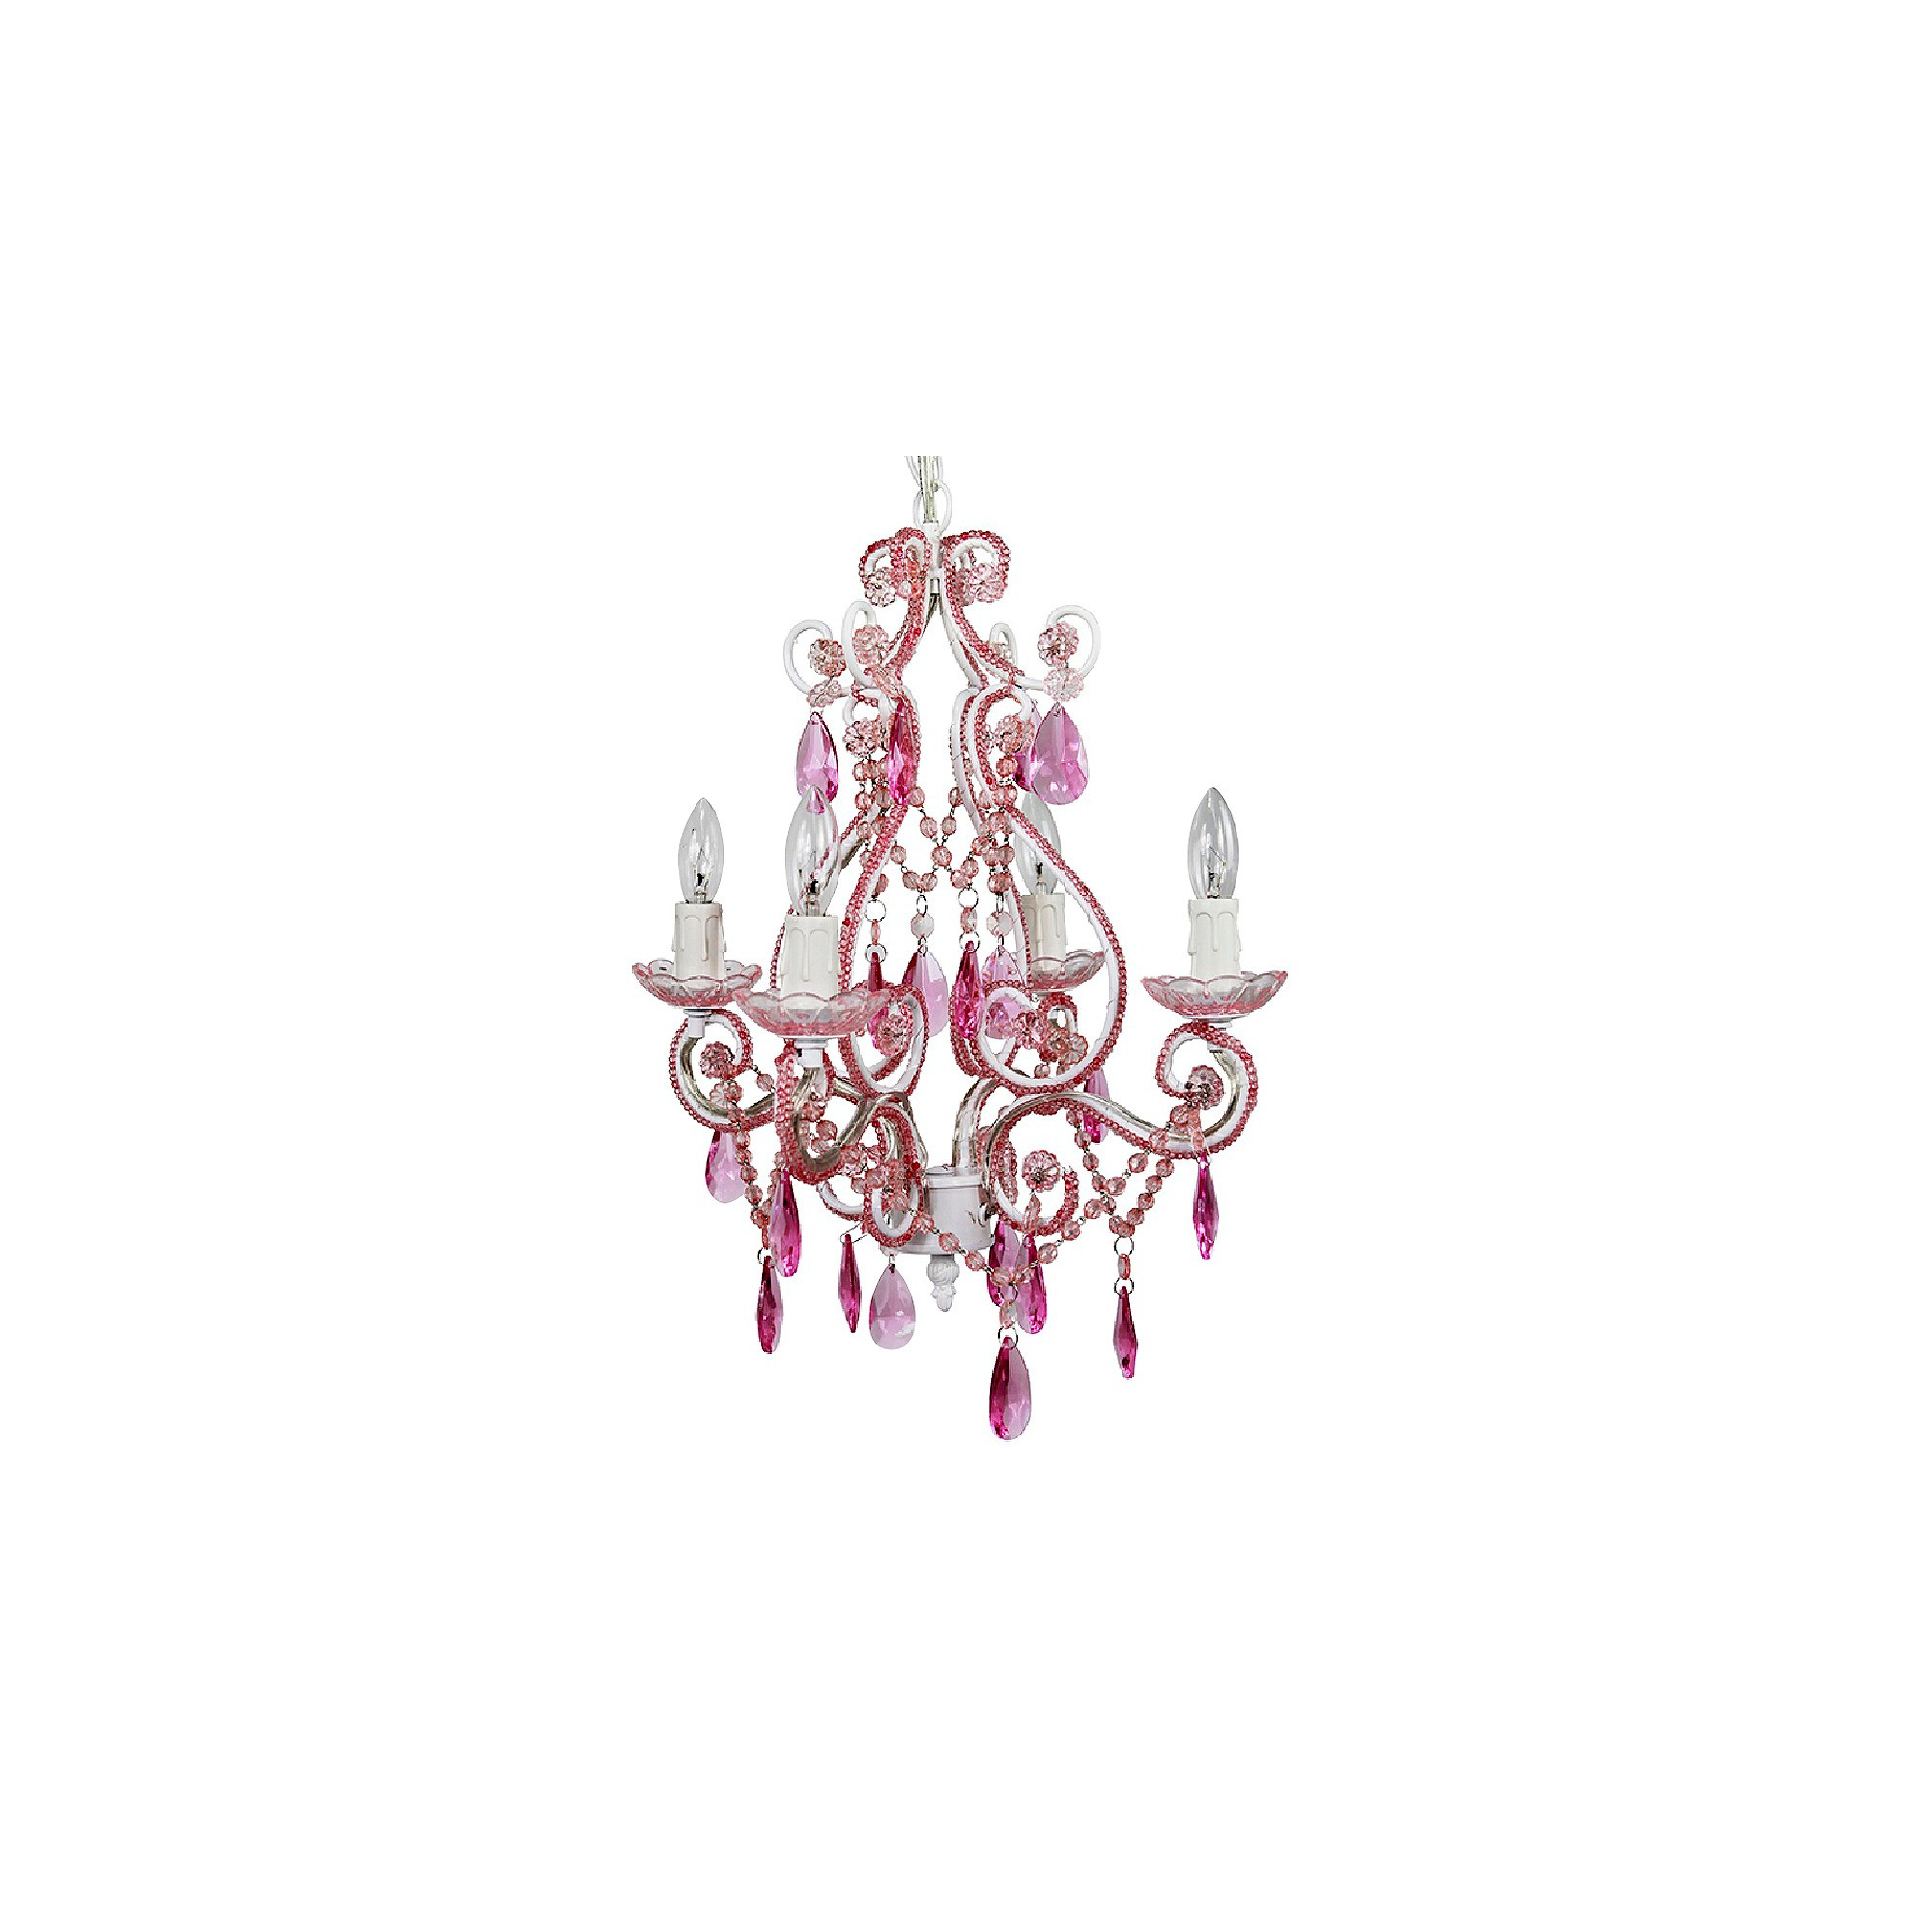 Three Posts Aldora 4 Light Candle Style Chandelier In 2019 Inside Aldora 4 Light Candle Style Chandeliers (View 20 of 30)